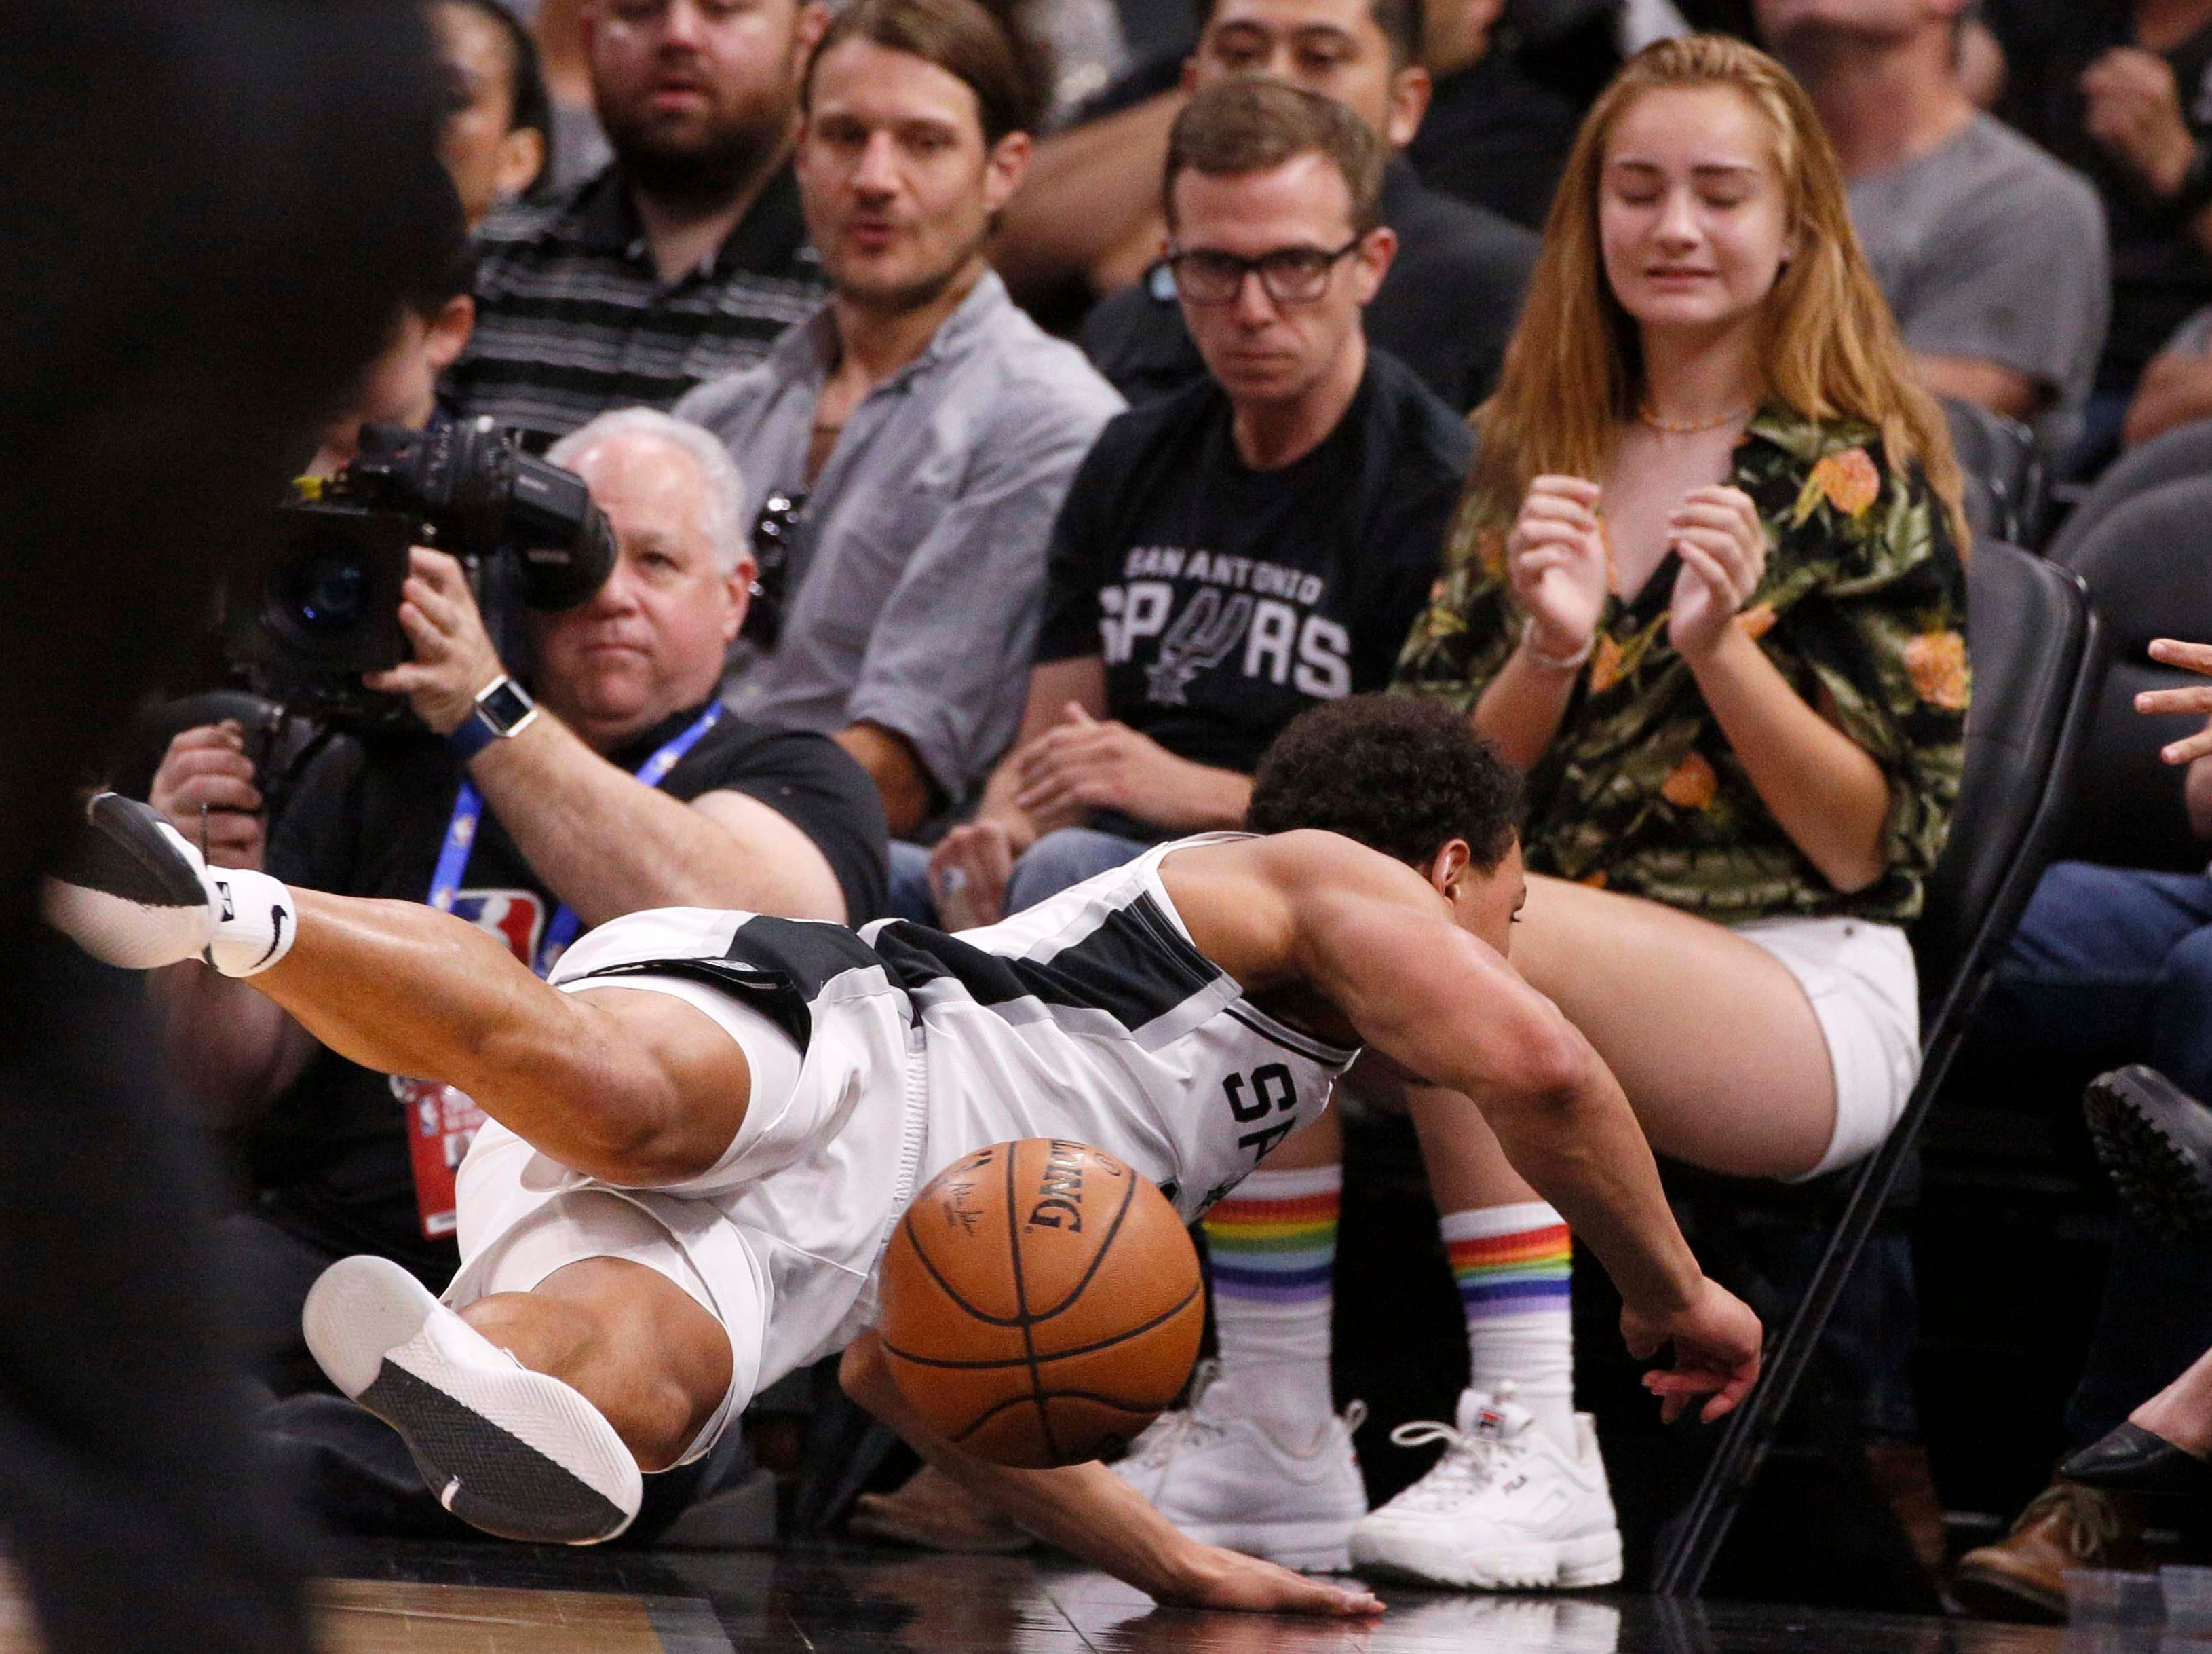 April 25: Spurs guard Bryn Forbes dives towards the courtside seats while chasing after a loose ball during Game 6 against the Nuggets.